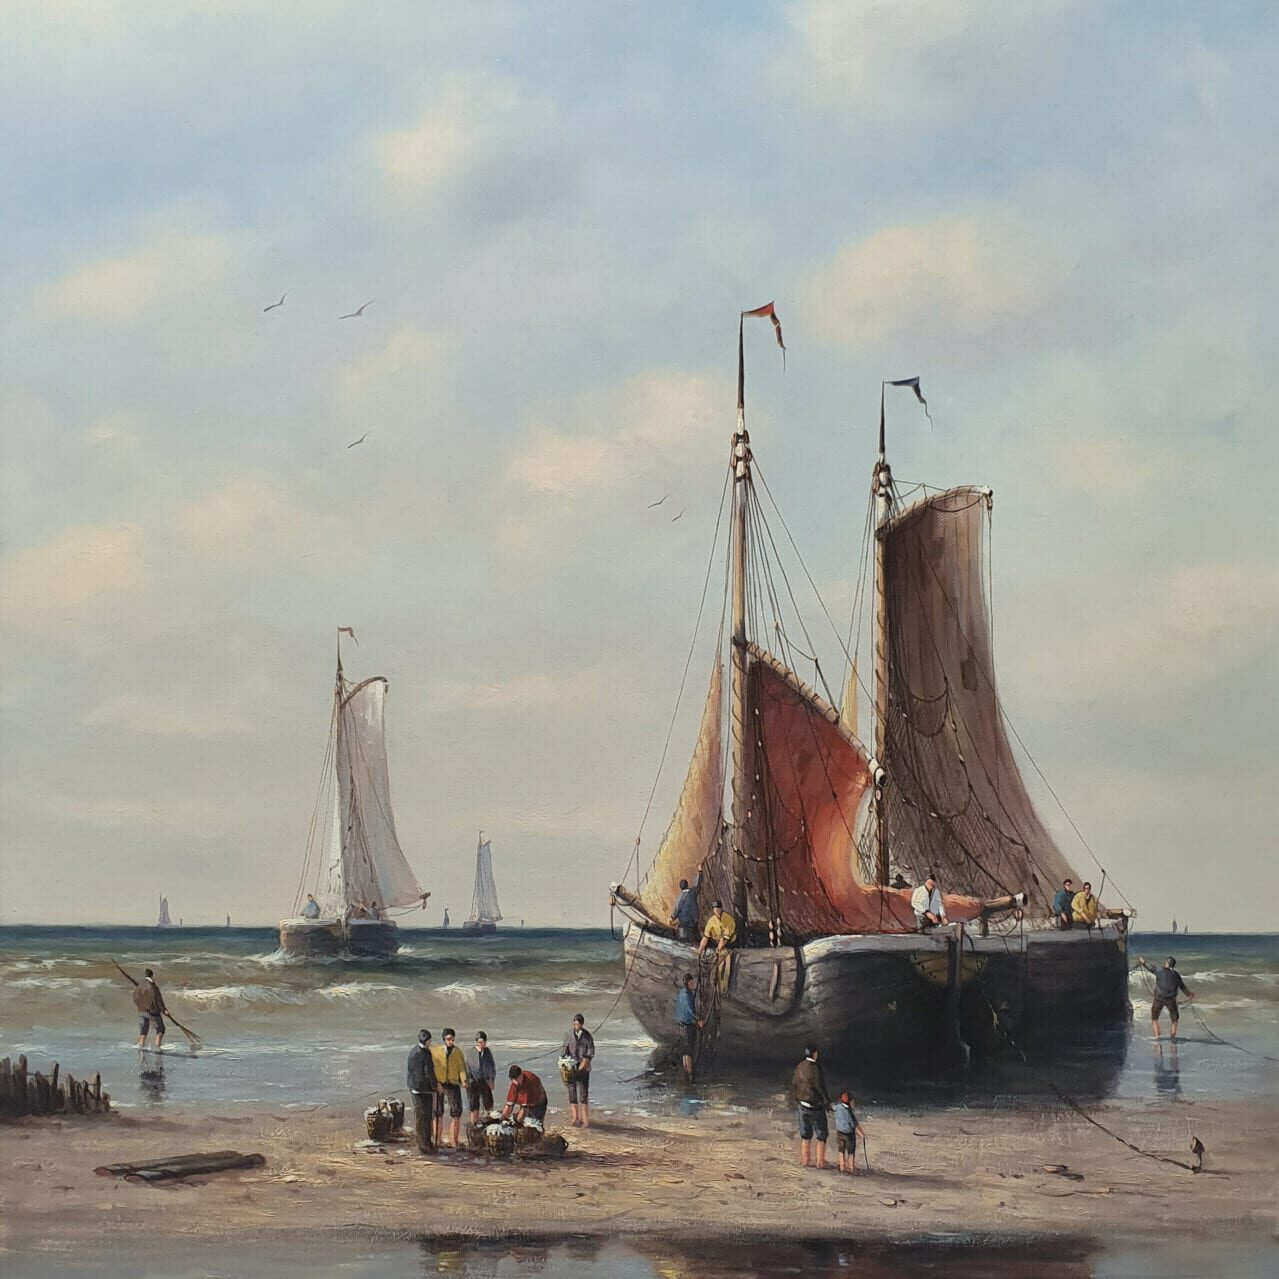 Simon Balyon - Hard Working on the Dutch Coastline